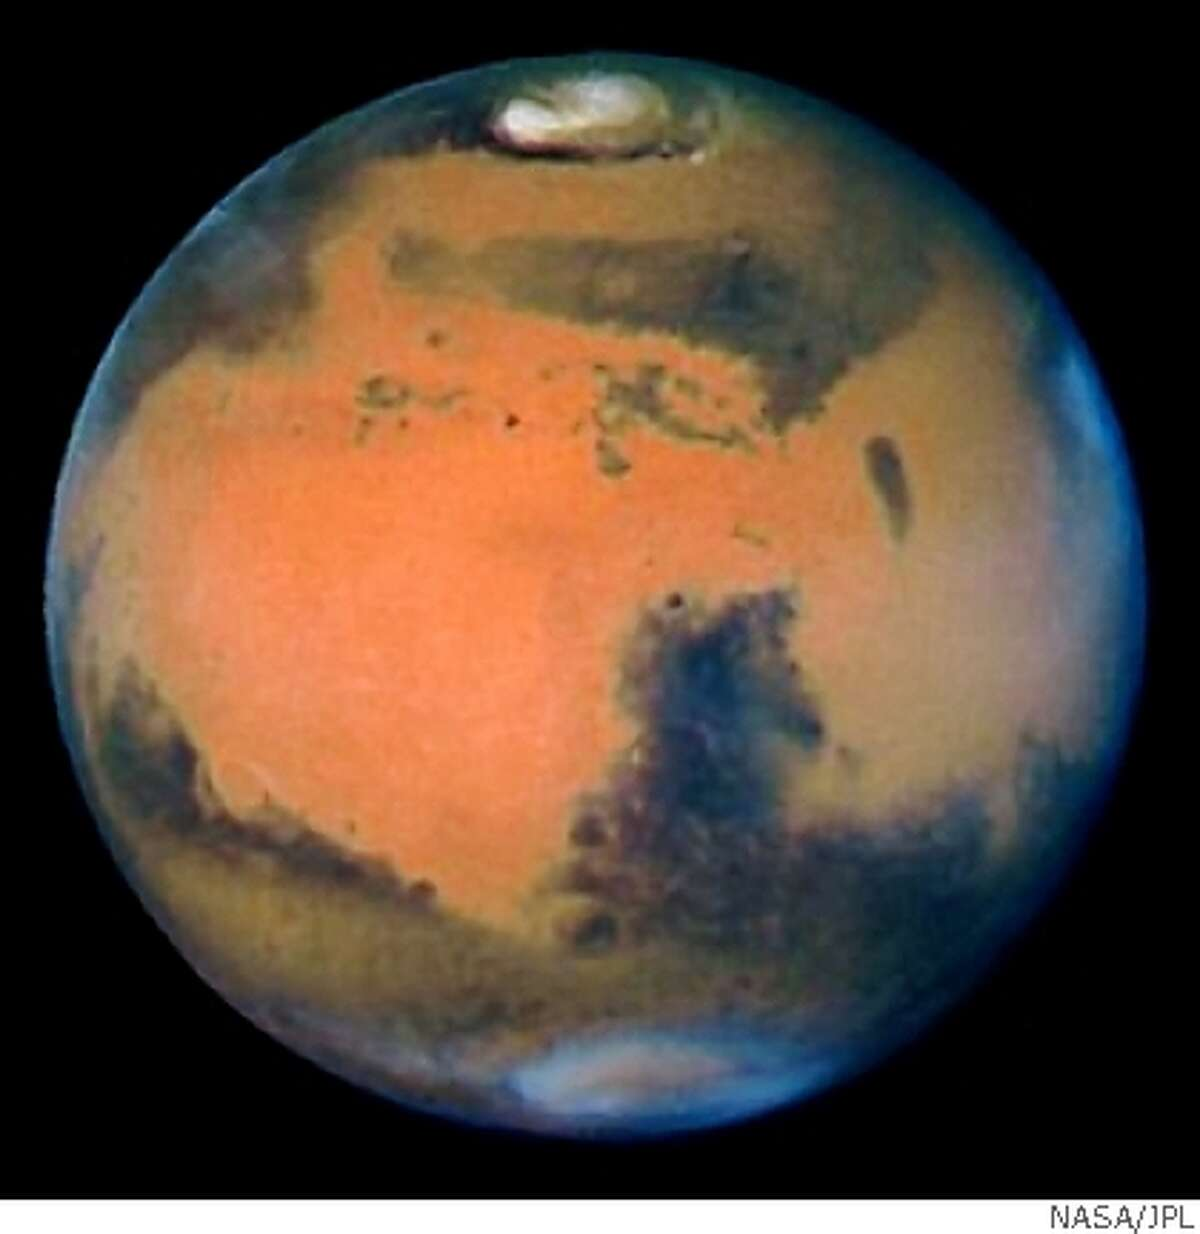 The sharpest view of Mars ever taken from Earth was obtained by the NASA Hubble Space Telescope (HST). This stunning portrait was taken with the HST Wide Field Planetary Camera-2 (WFPC2) on March 10, 1997, just before Mars opposition, when the red planet made one of its closest passes to the Earth (about 60 million miles or 100 million km).